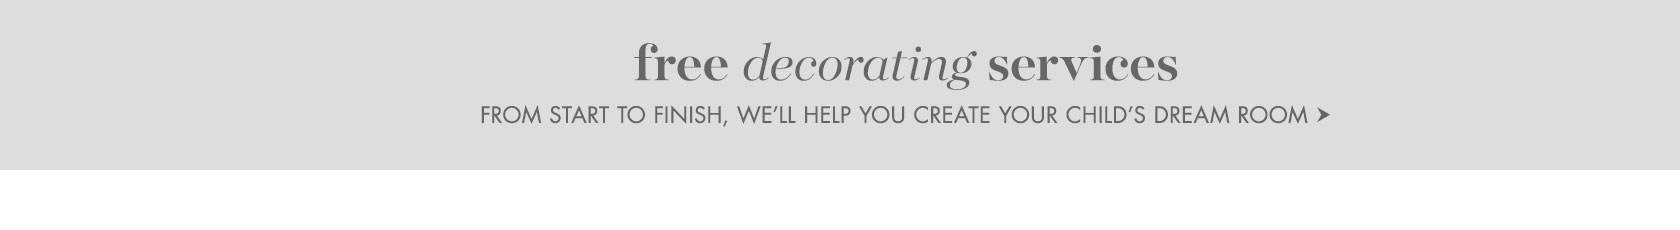 Free Decorating Services